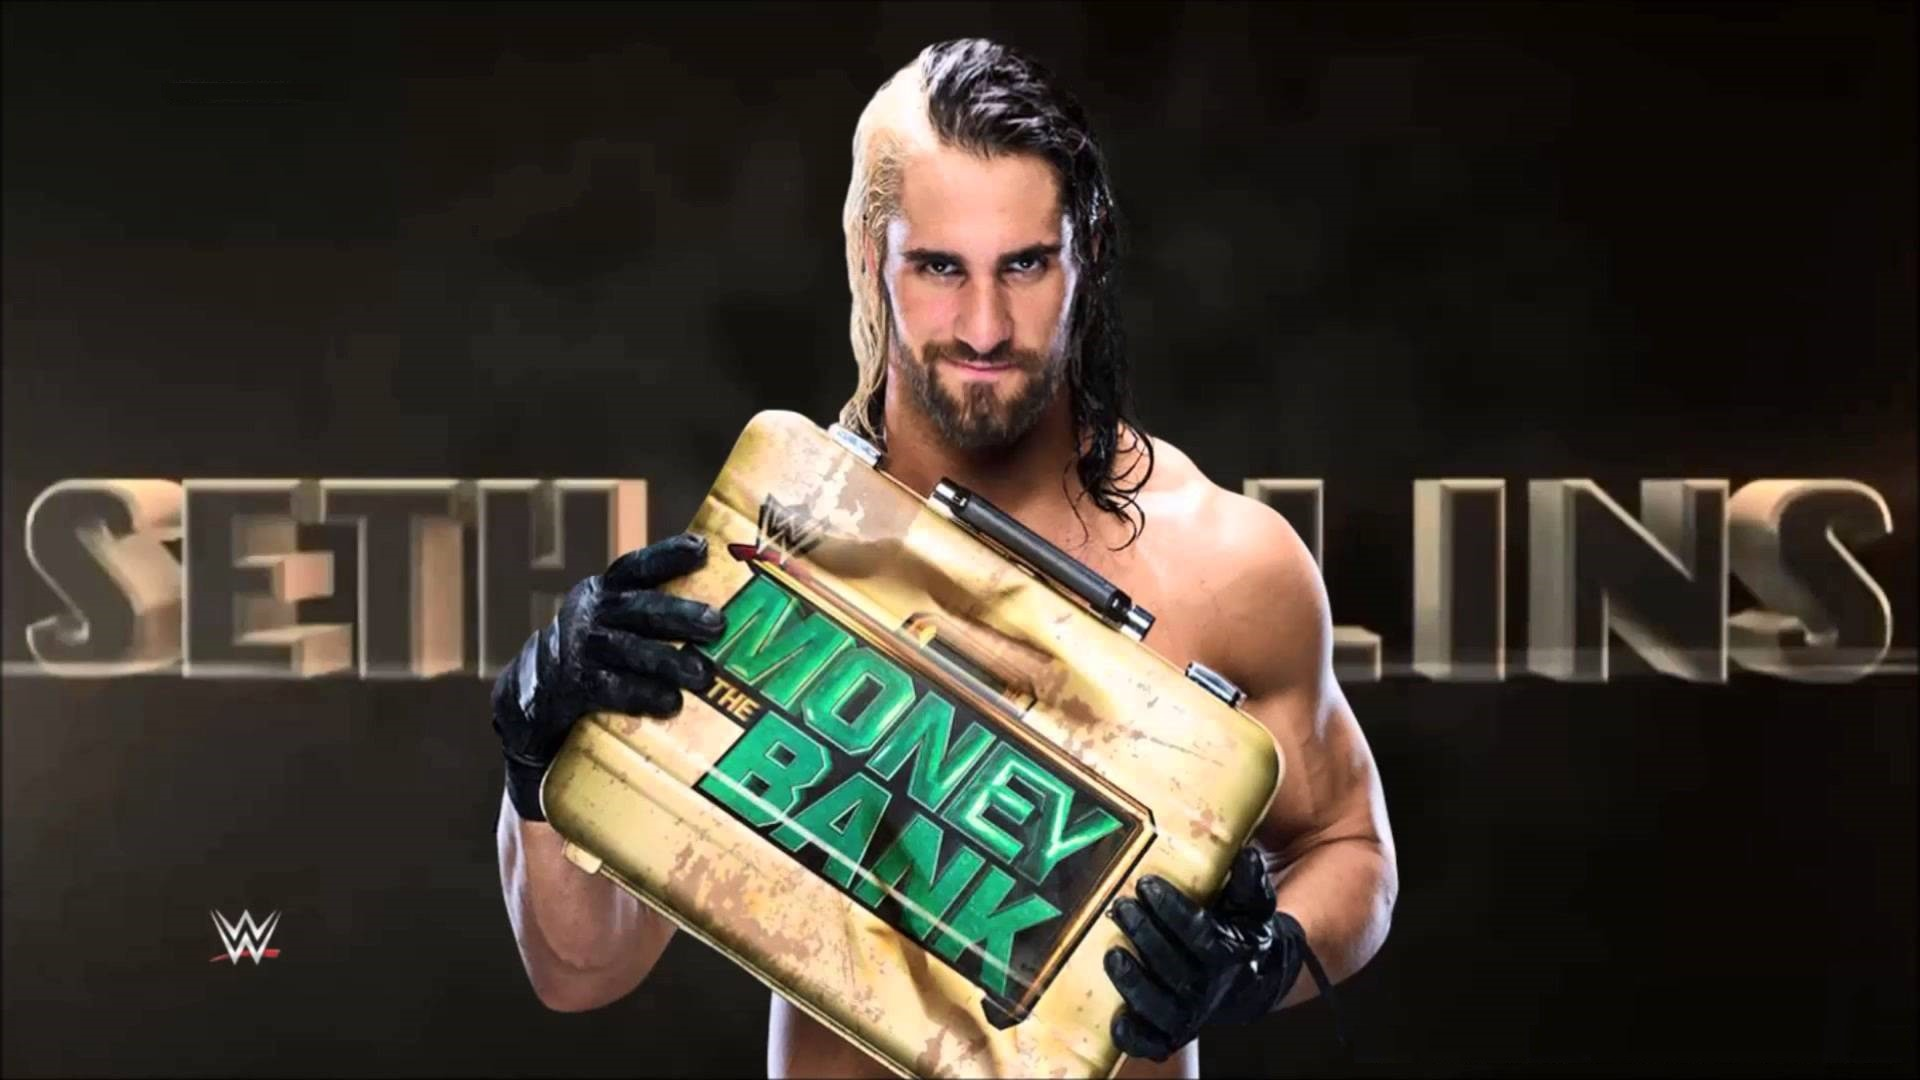 … Seth Rollins HD Wallpapers 3 …